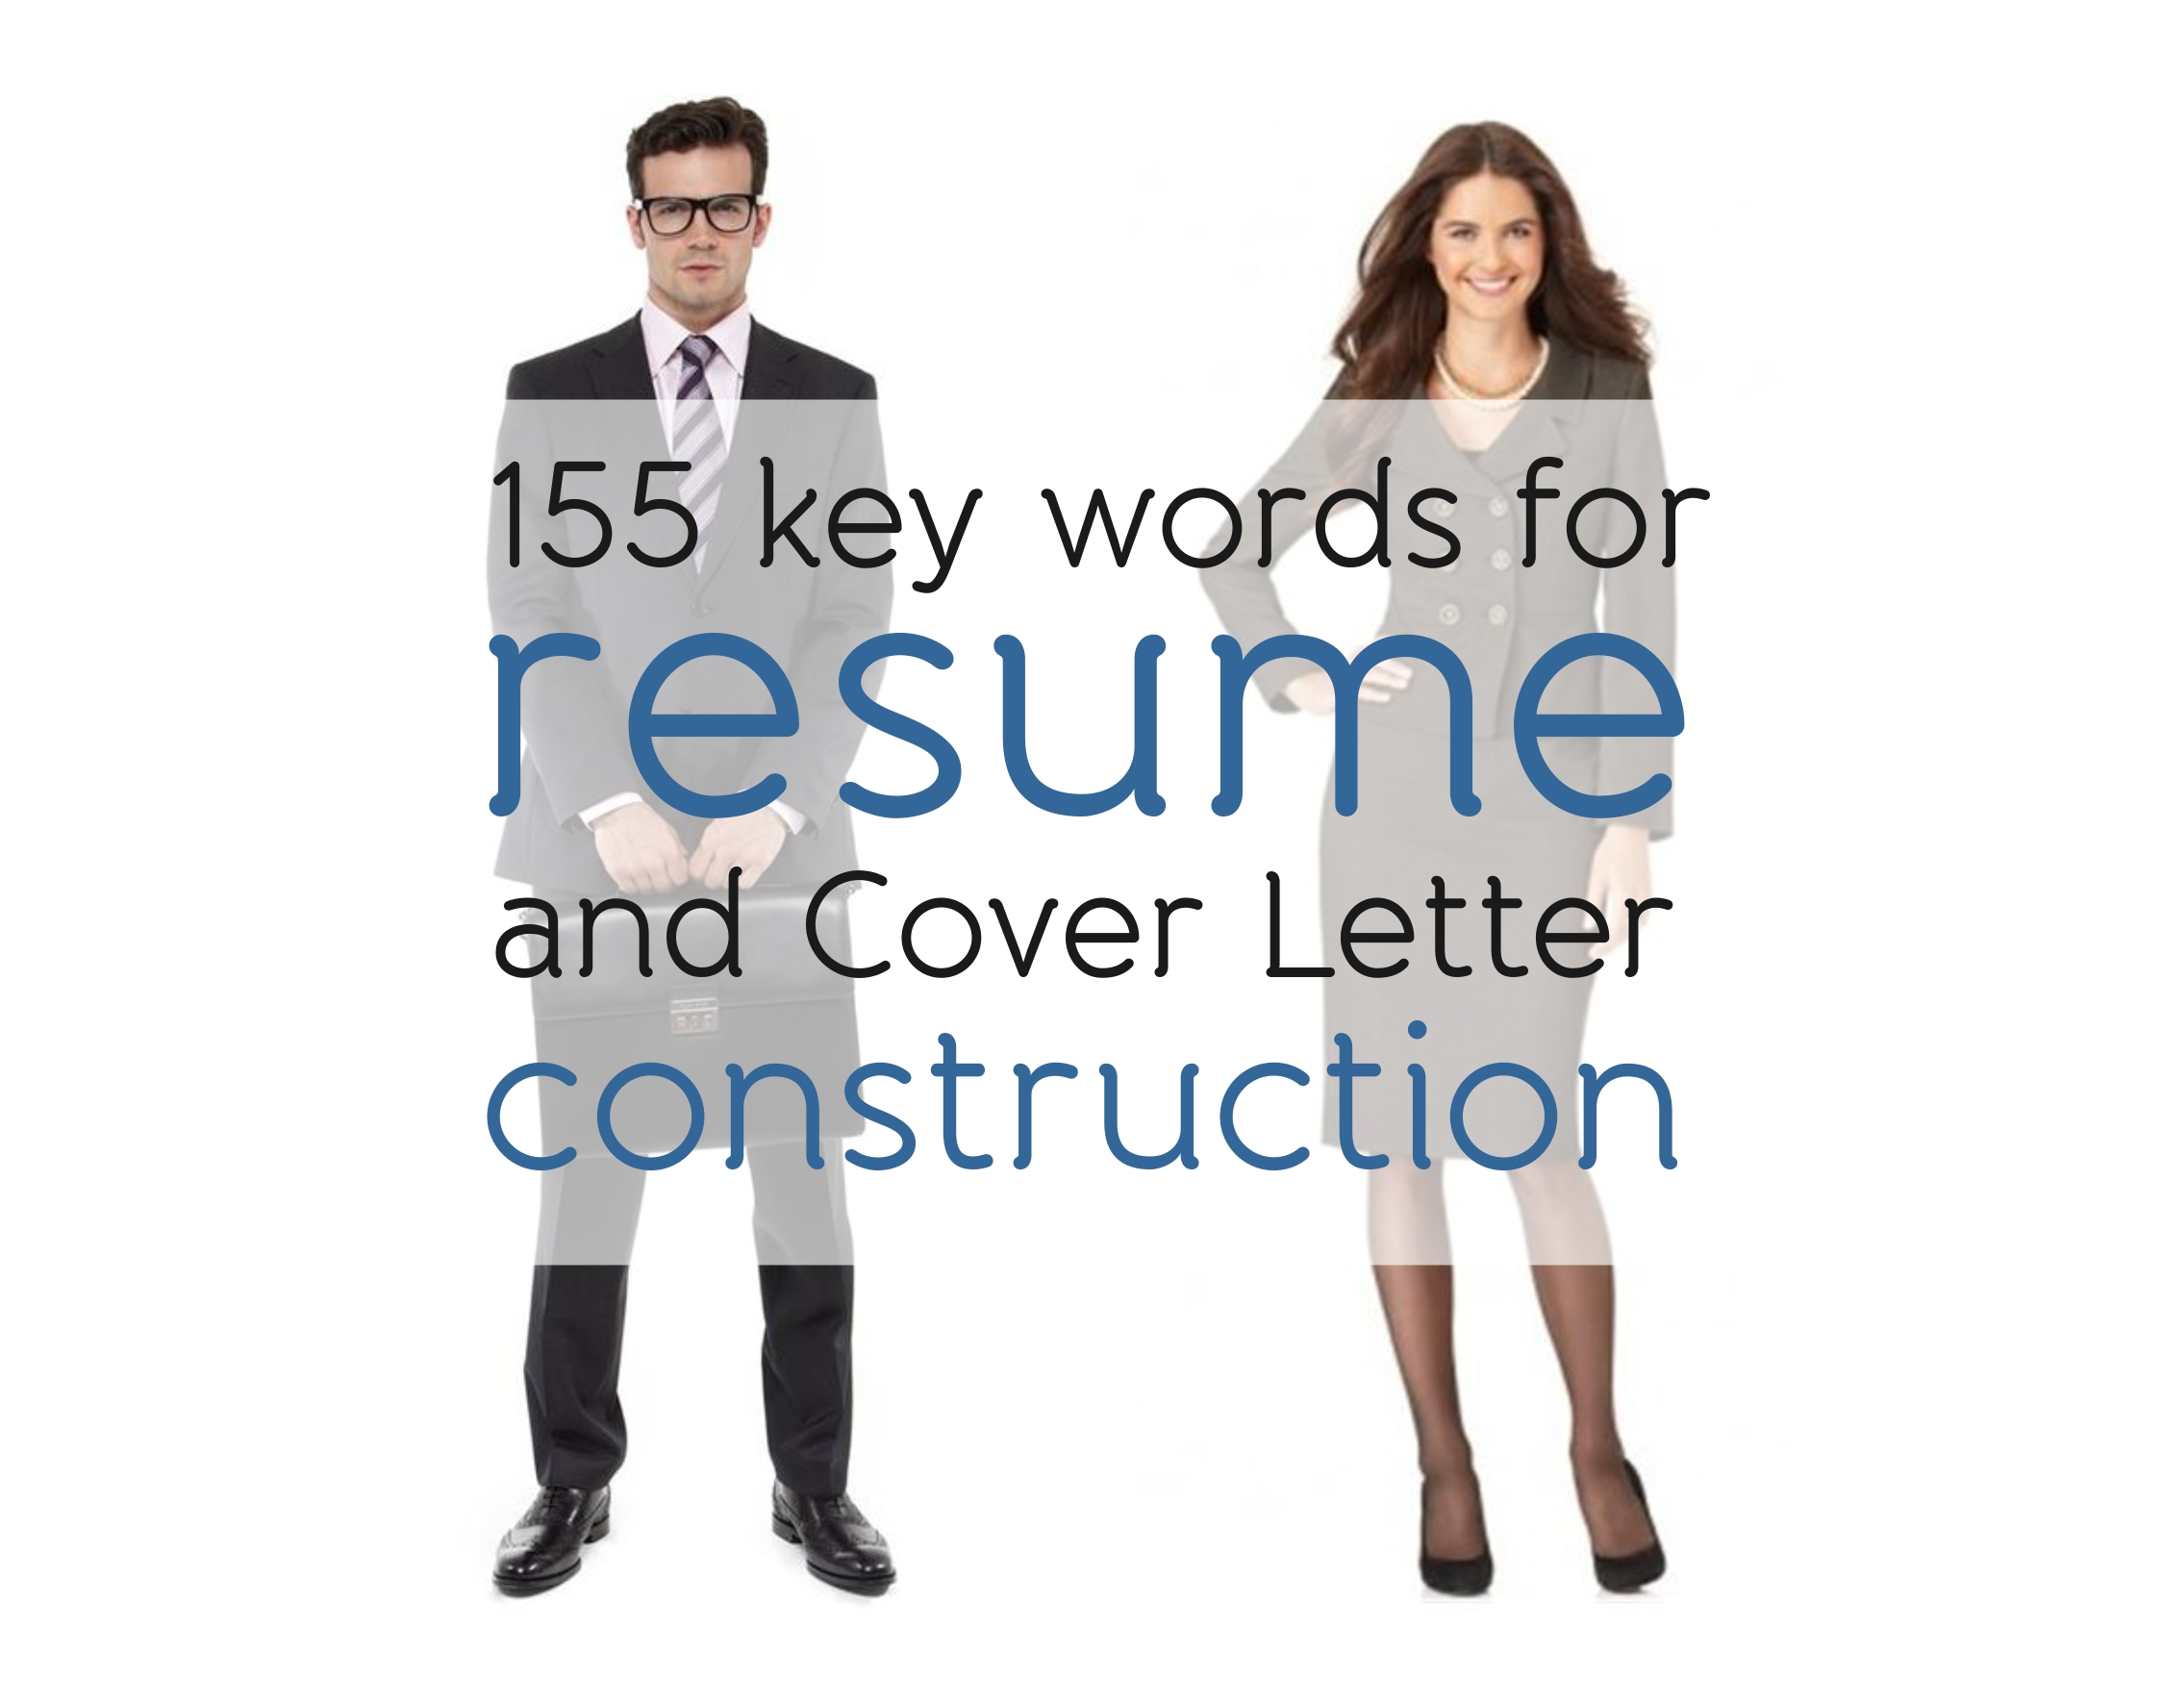 keywords for resume and cover letter construction Writing a cover letter can be daunting, but if you consult our professional construction laborer cover letter sample, you'll see it's actually pretty easy.